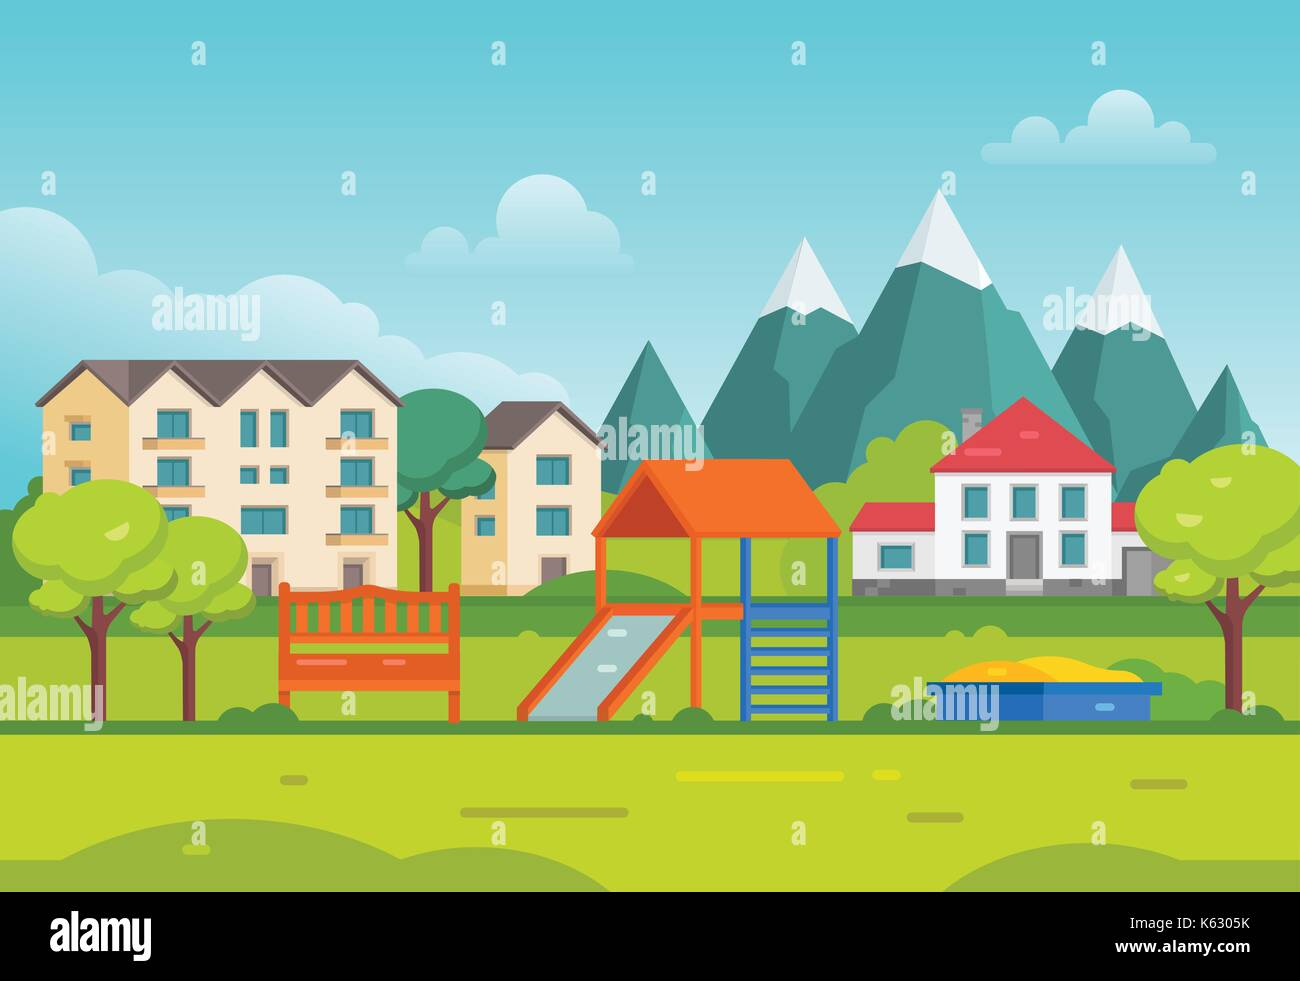 Housing estate with playground by the mountains - modern vector illustration. Peaceful landscape with hills, trees, Stock Vector